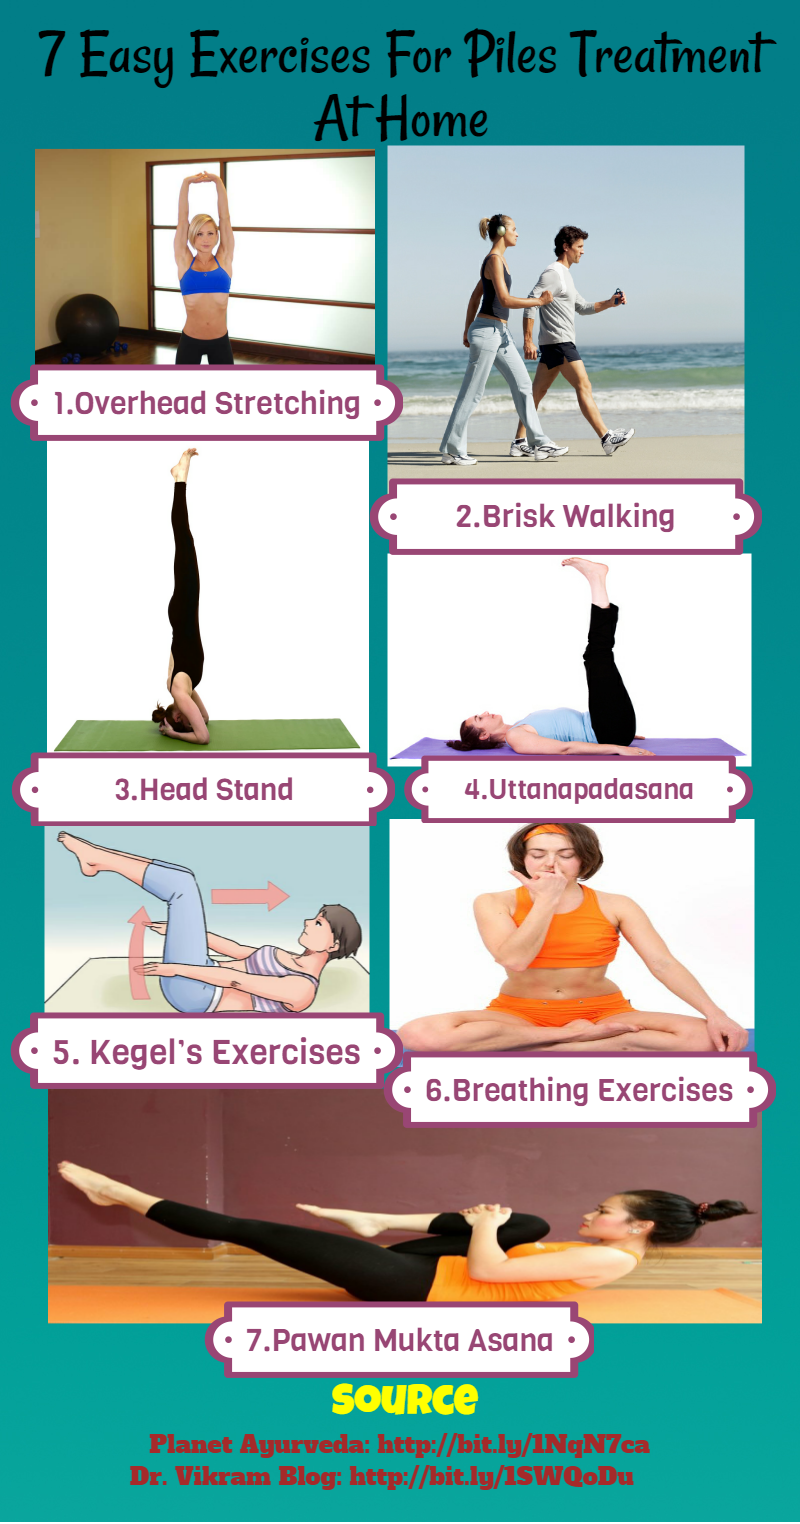 36 Easy Exercises For Piles Treatment At Home